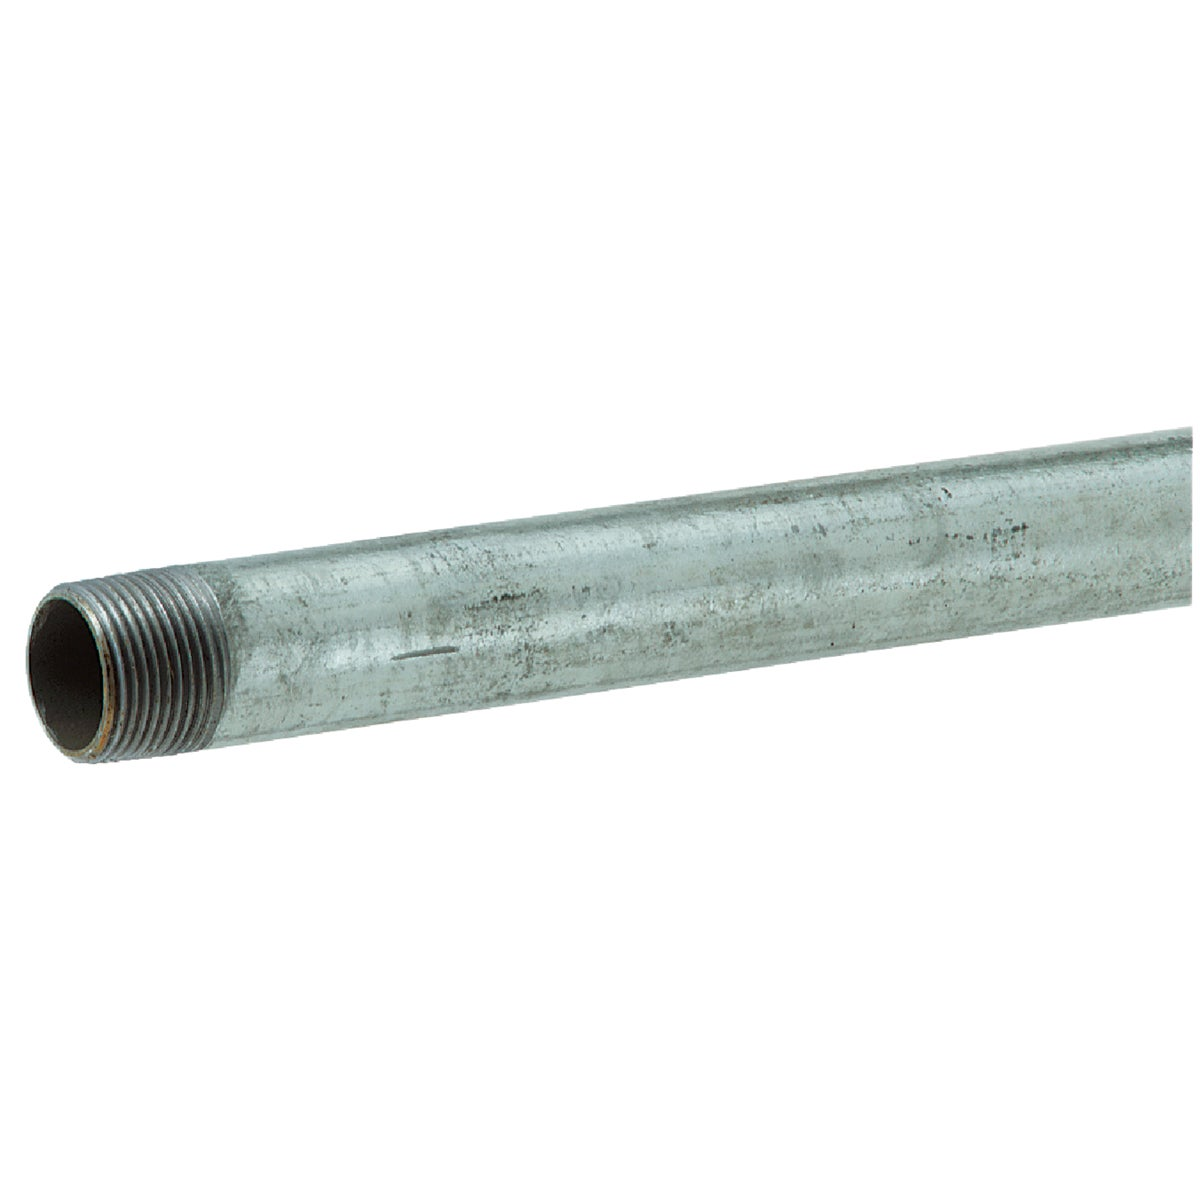 1/2X24 GALV RDI-CT PIPE